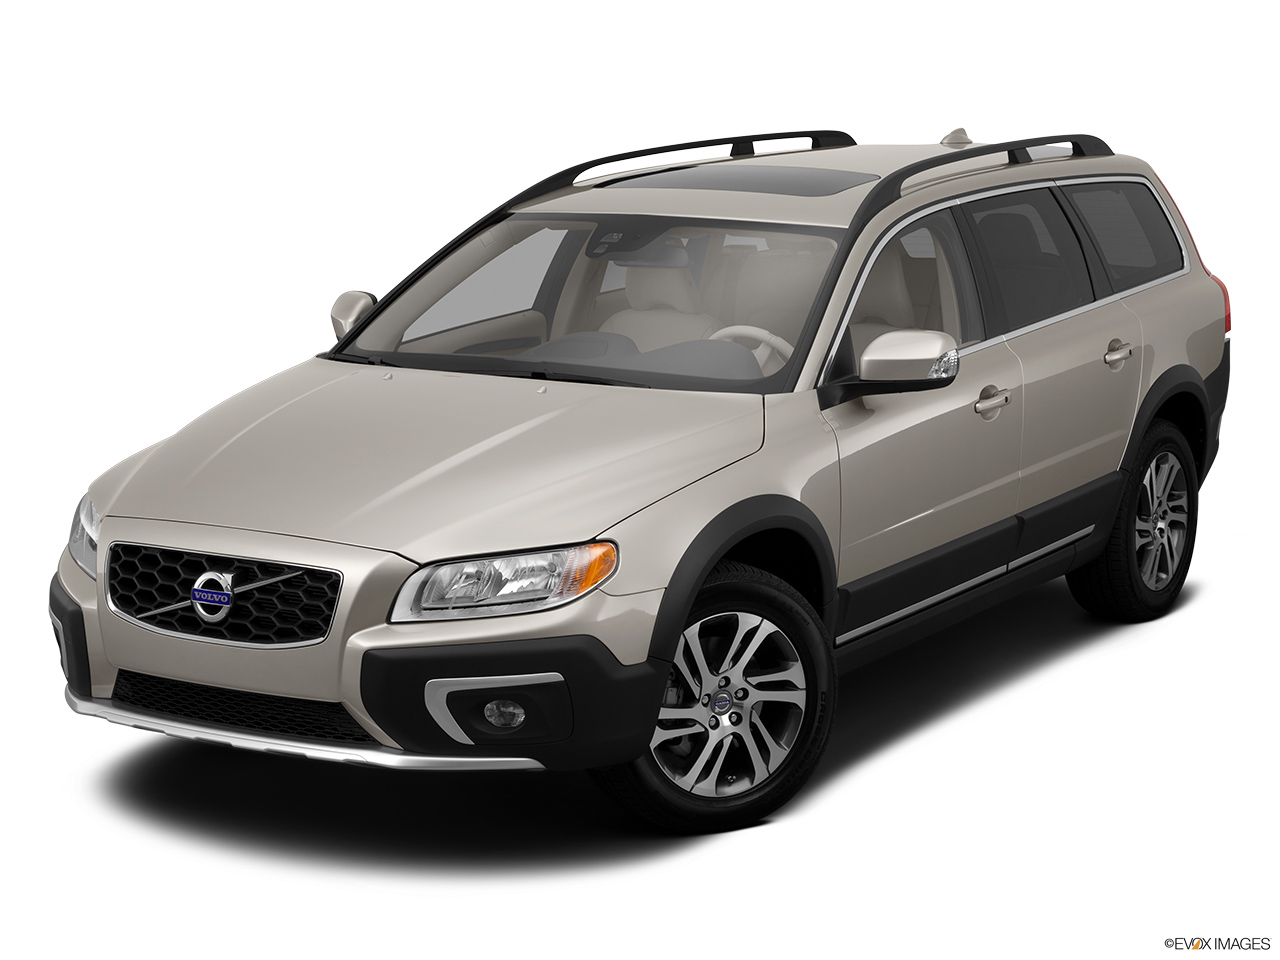 2015 volvo xc70 2015 5 awd 4 door 3 2l wagon. Black Bedroom Furniture Sets. Home Design Ideas